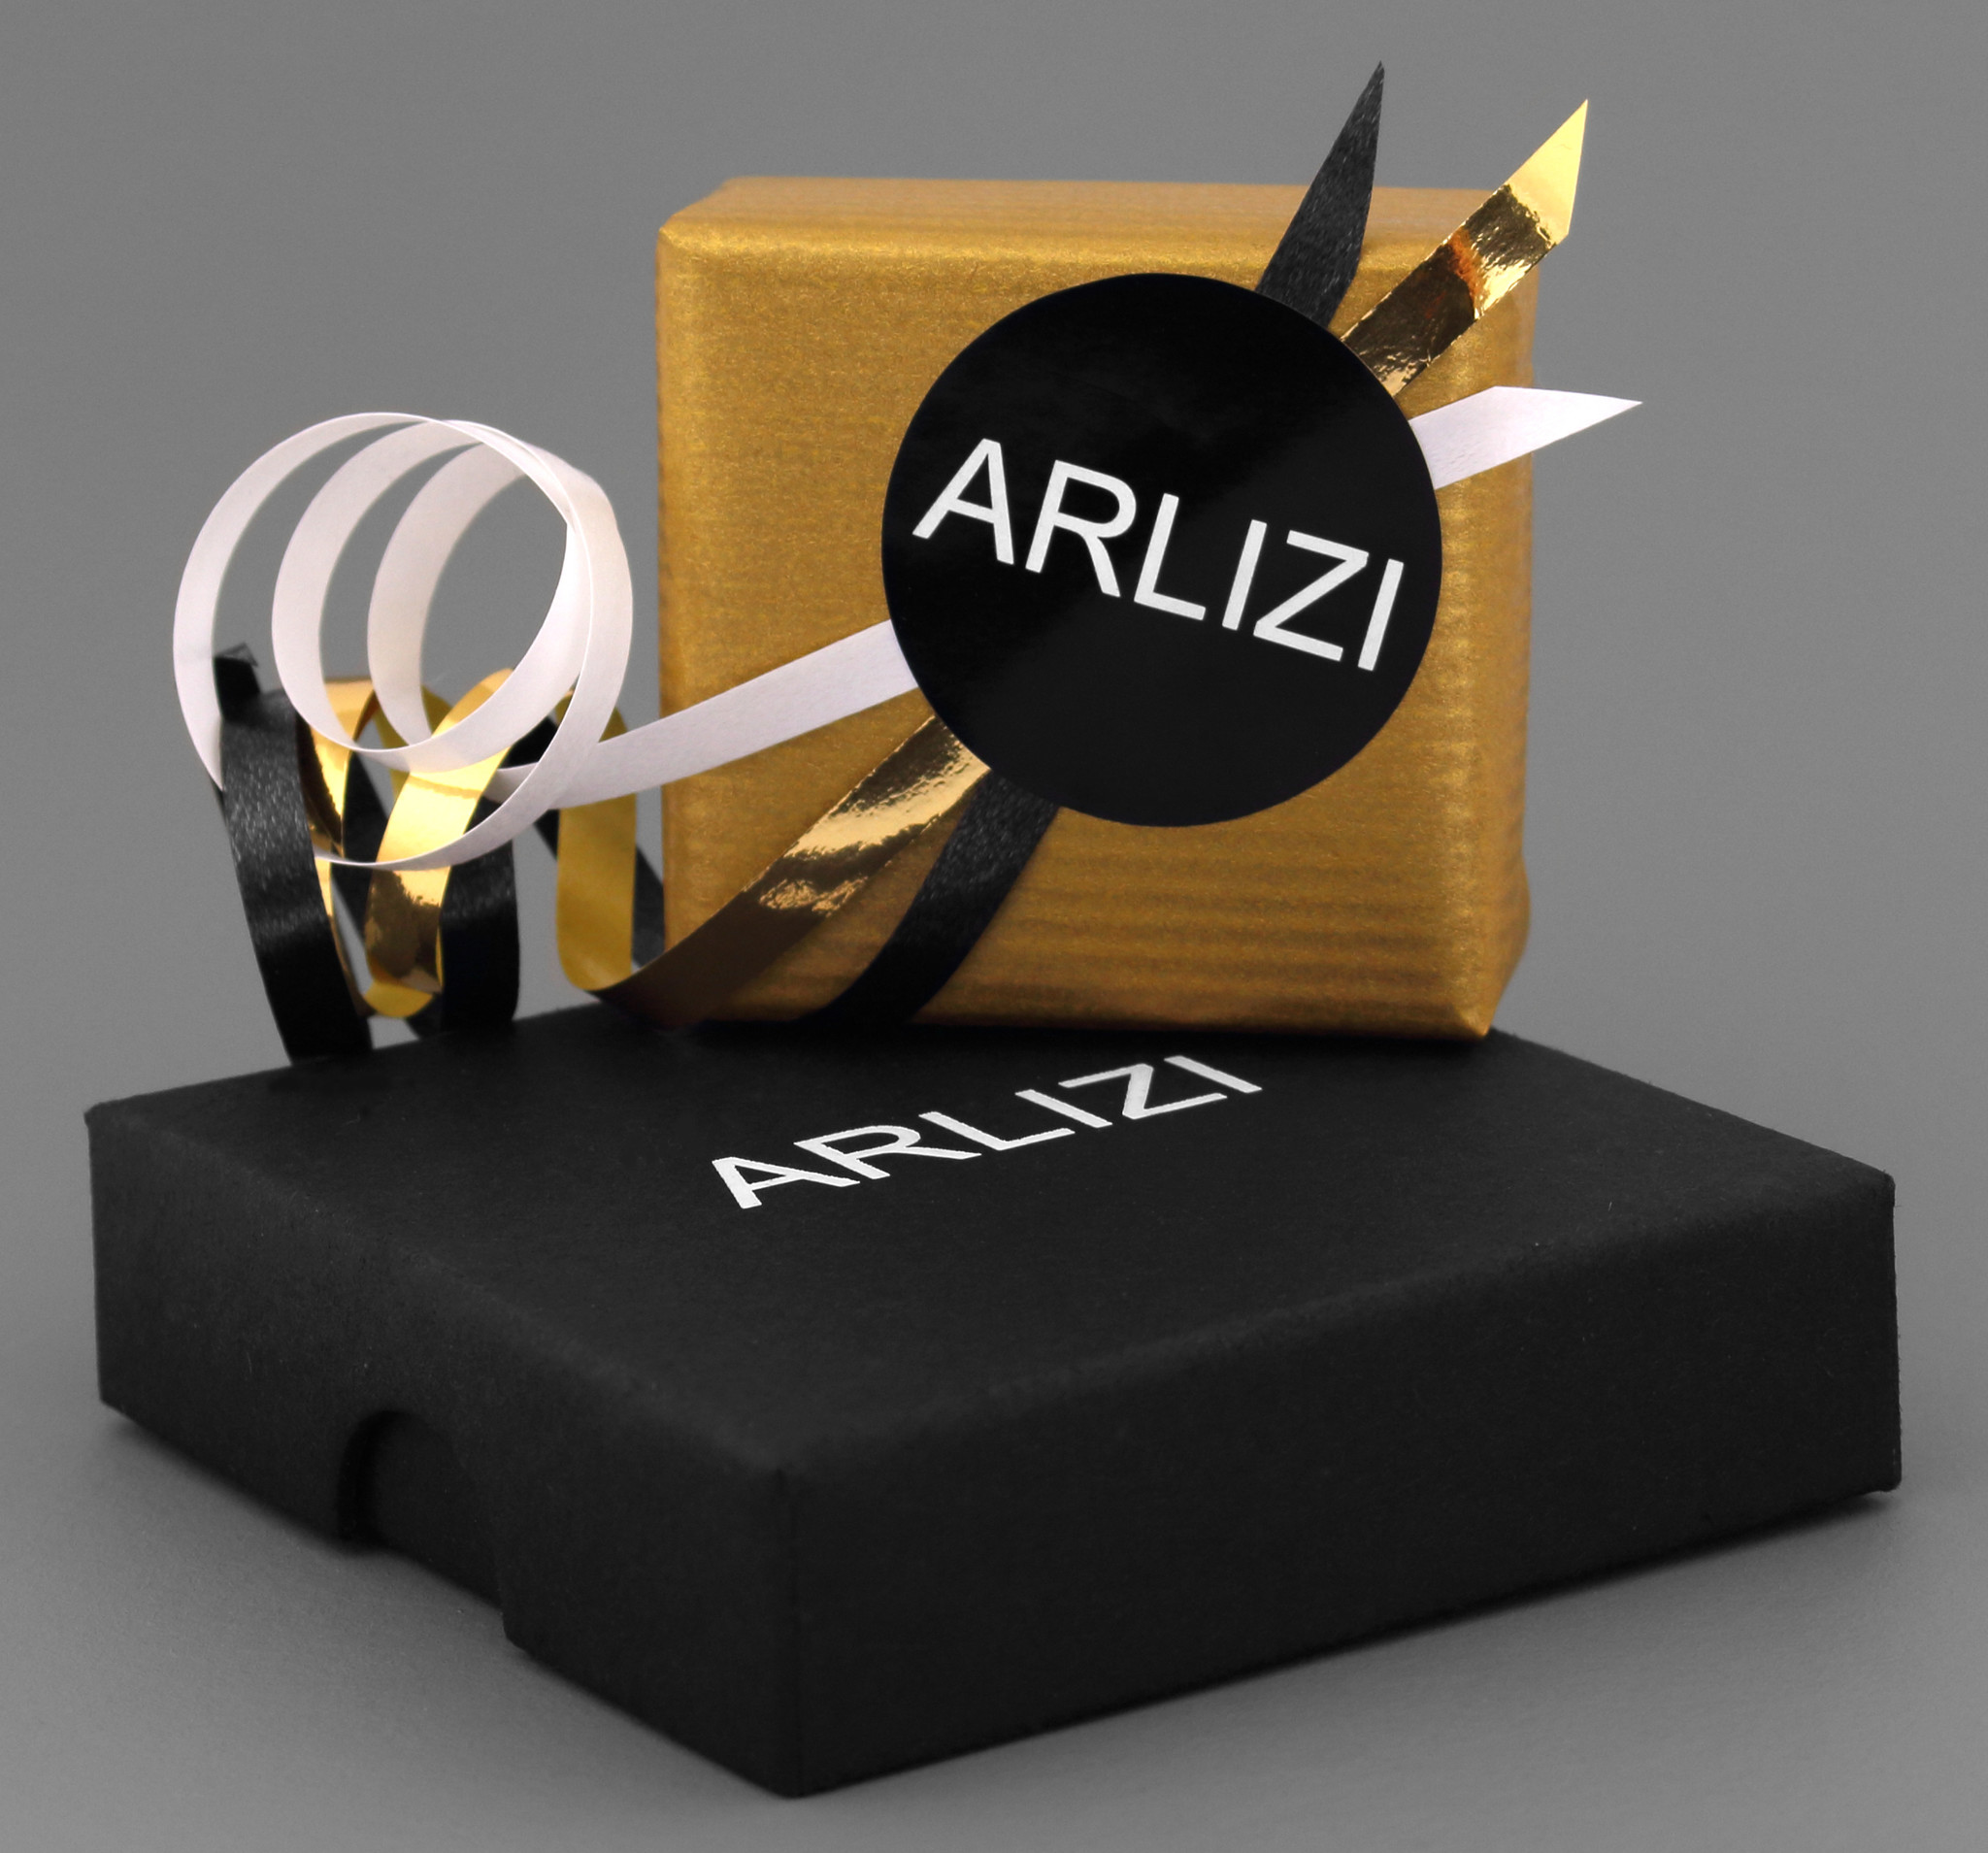 ARLIZI Jewelry Gift Wrap